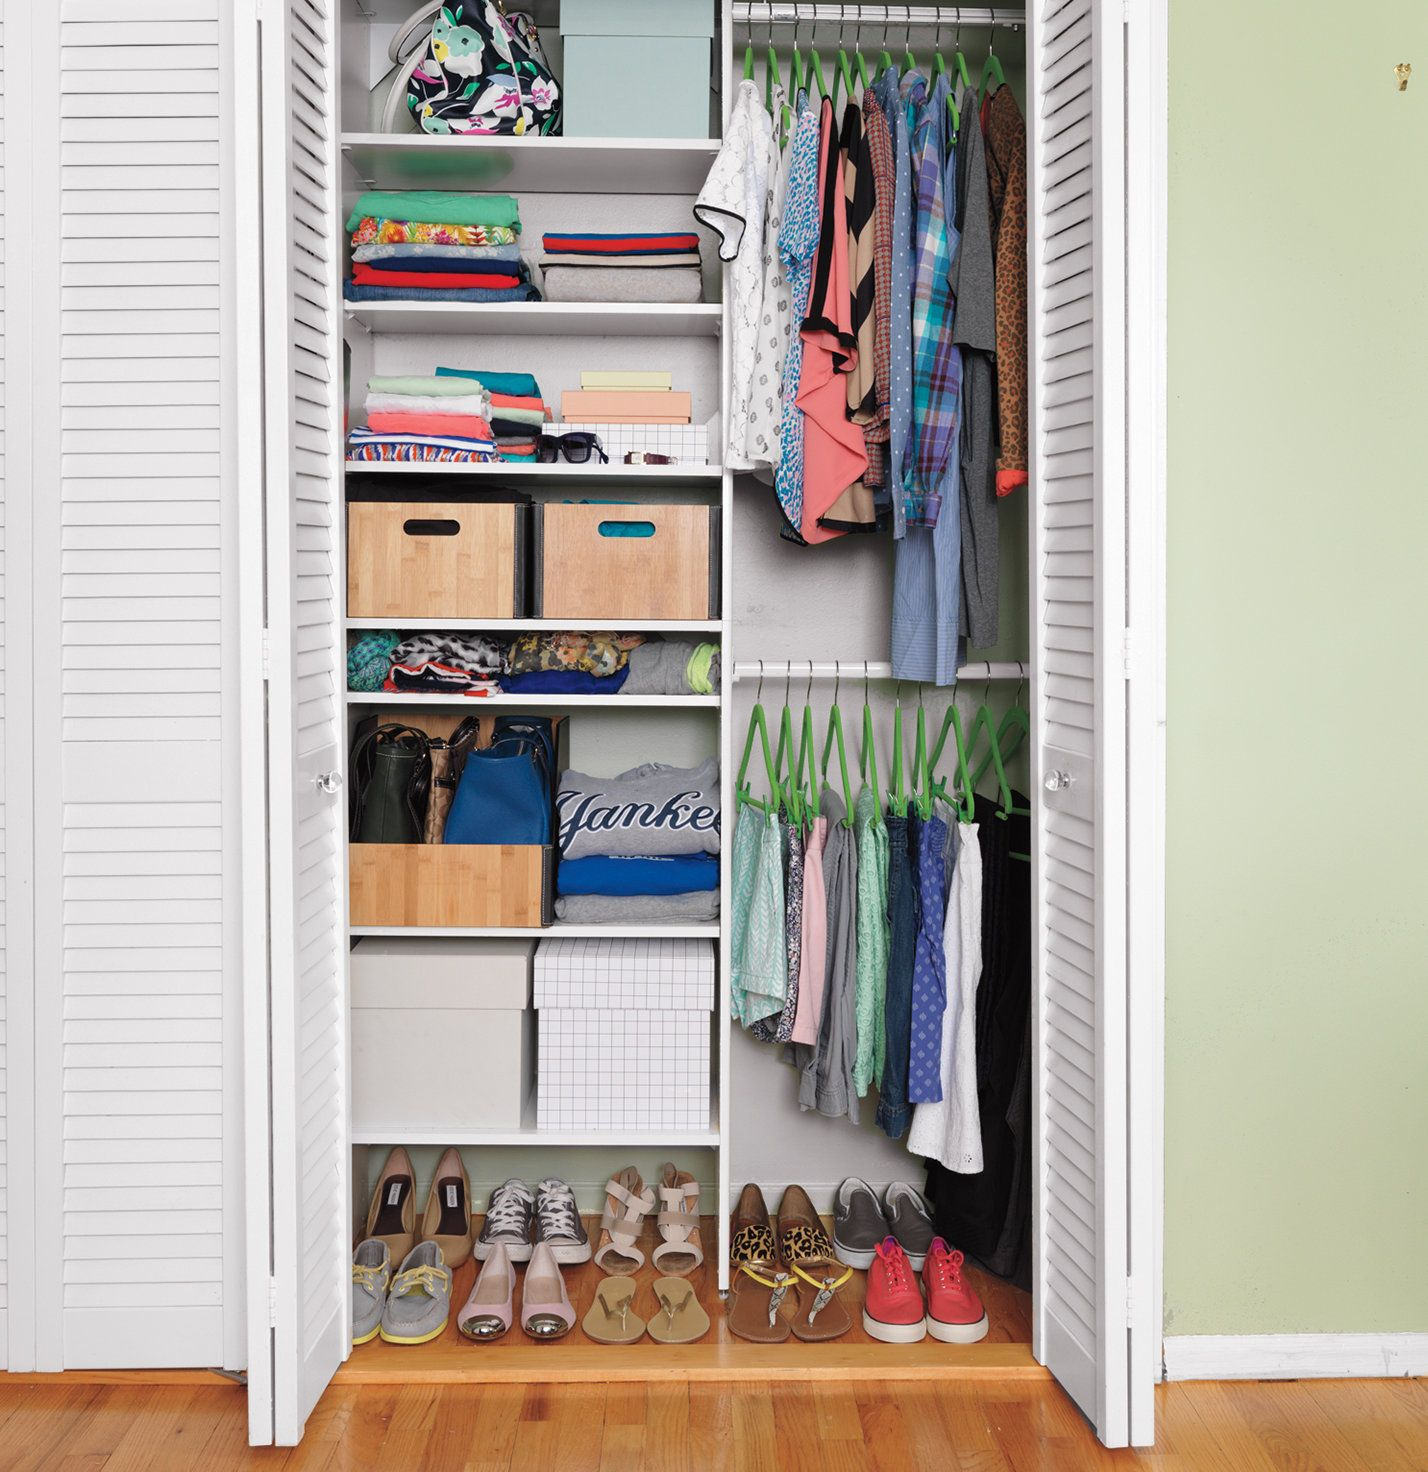 craft closet mudroom design transform mds quaker sea closets mpl cabinetry storage